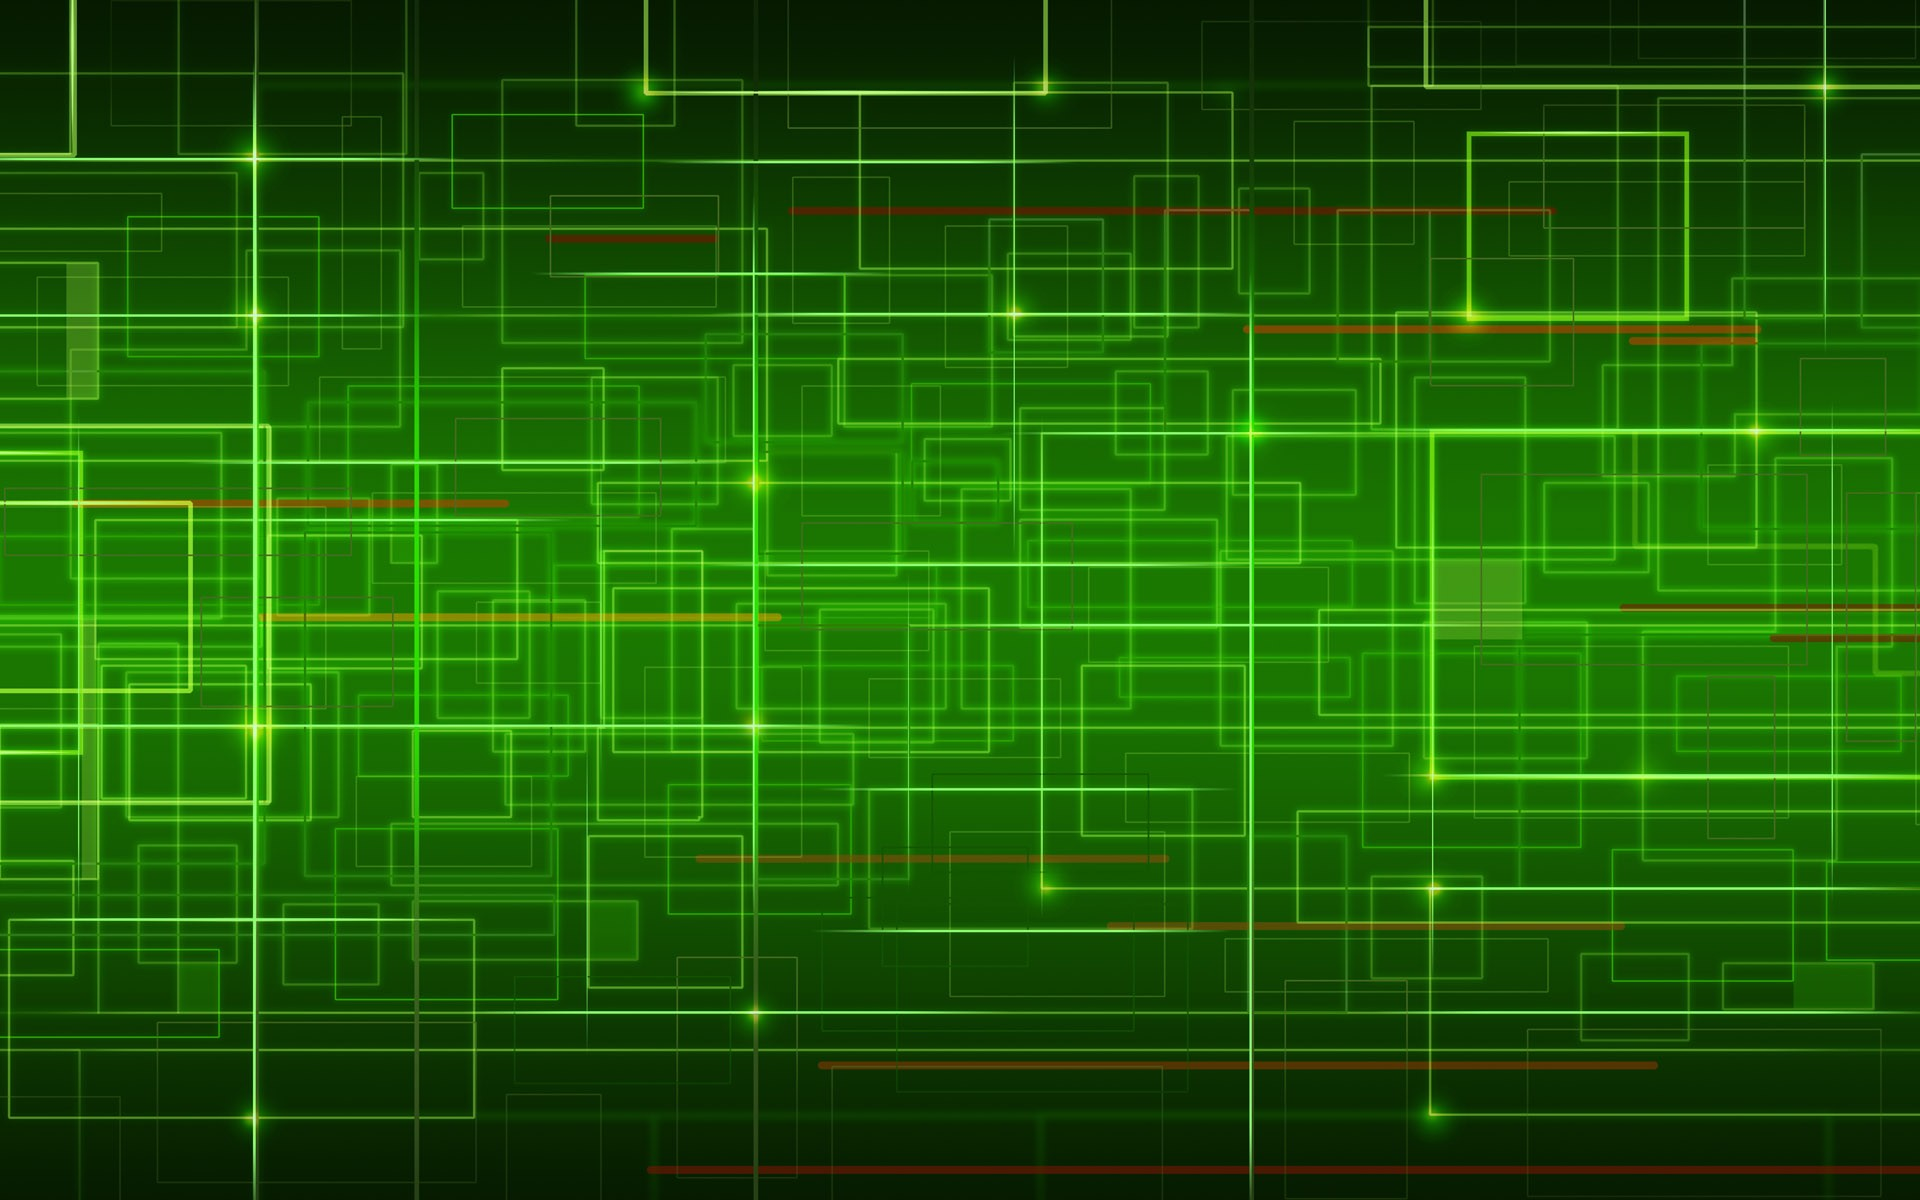 Matrix Network Green Wallpaper Download